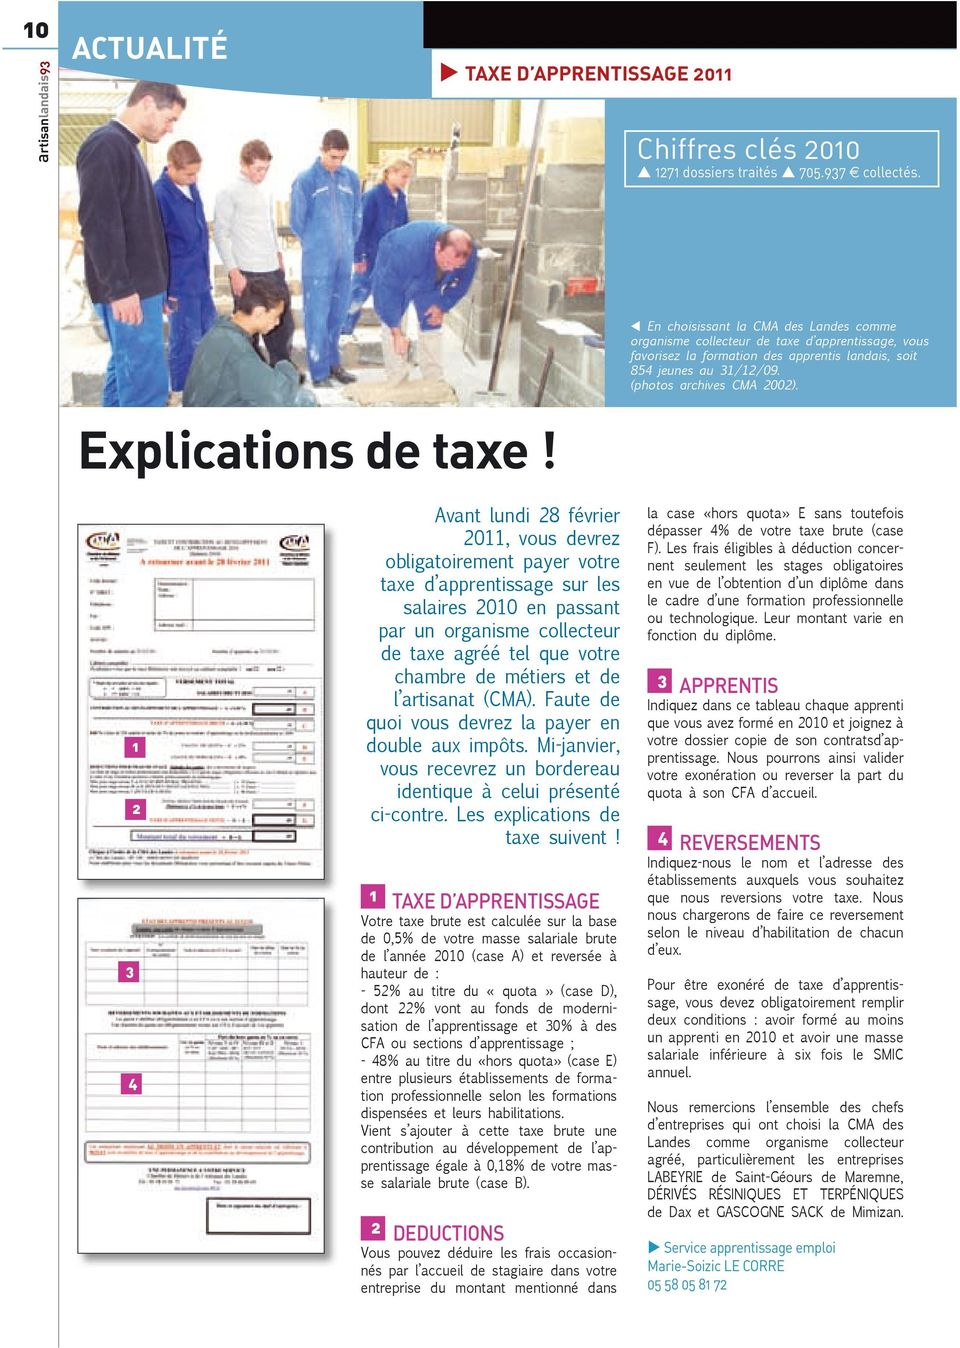 Explications de taxe!